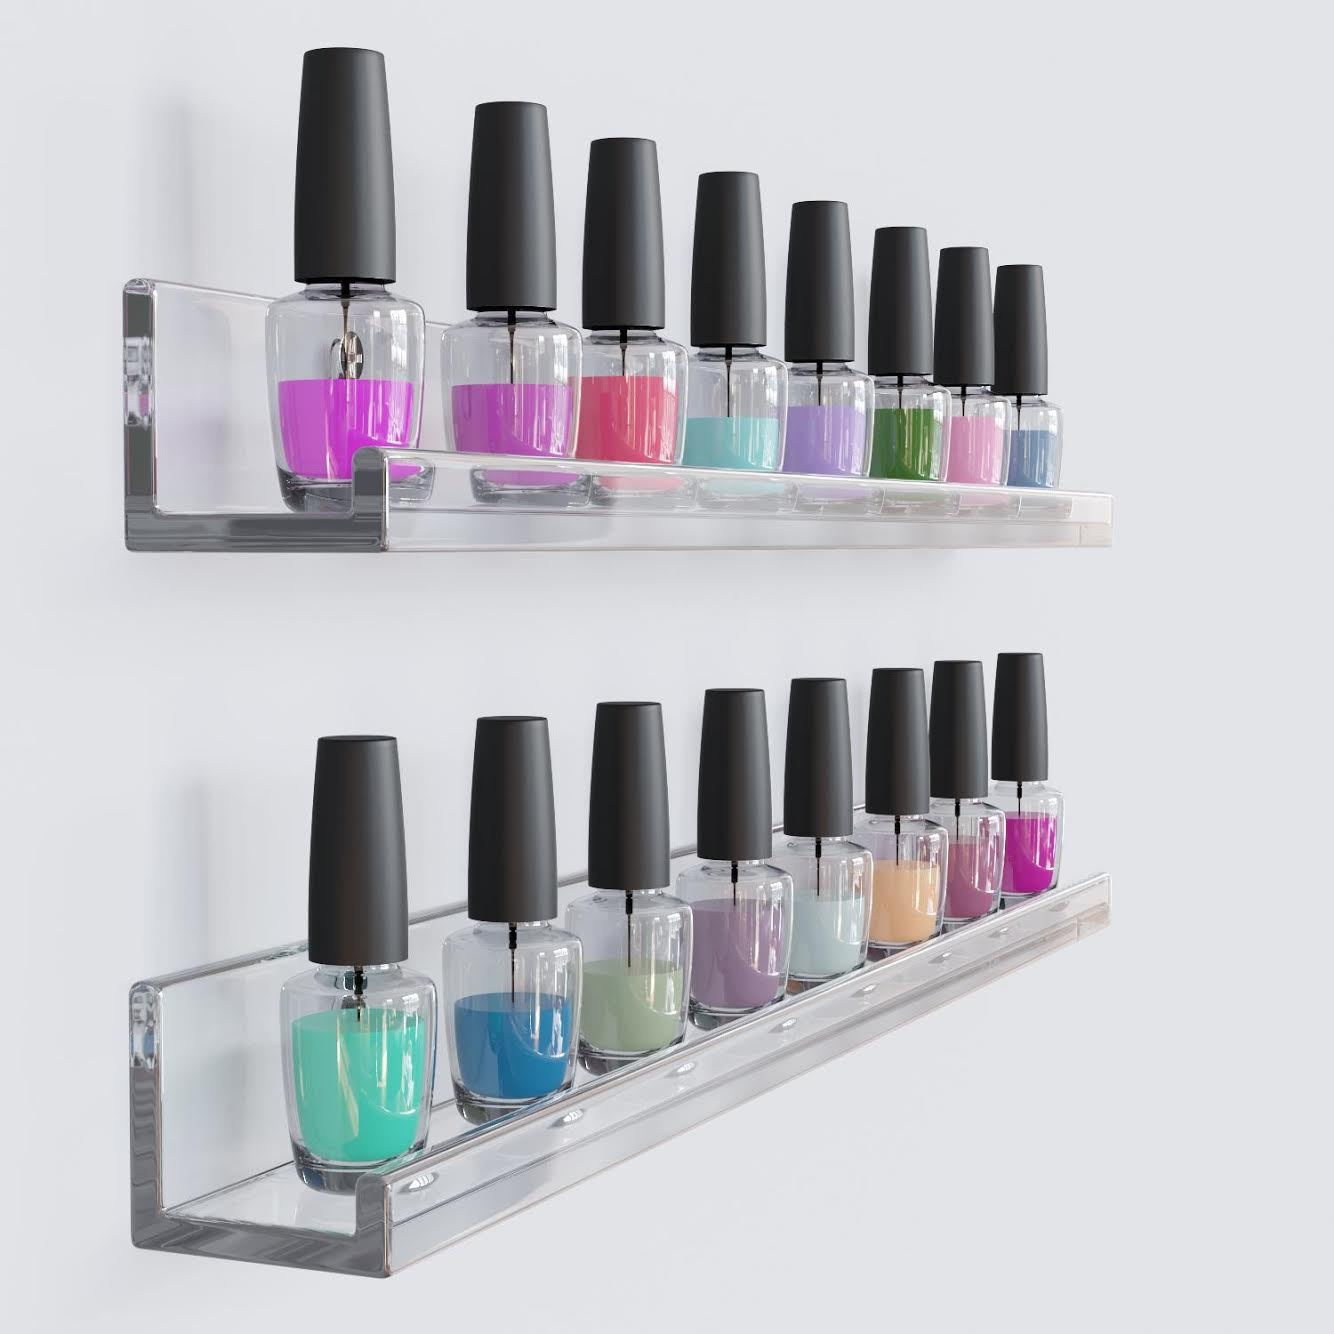 invisible floating wall shelf clear acrylic photo ledge display bookshelf nail polish rack 17 inch set